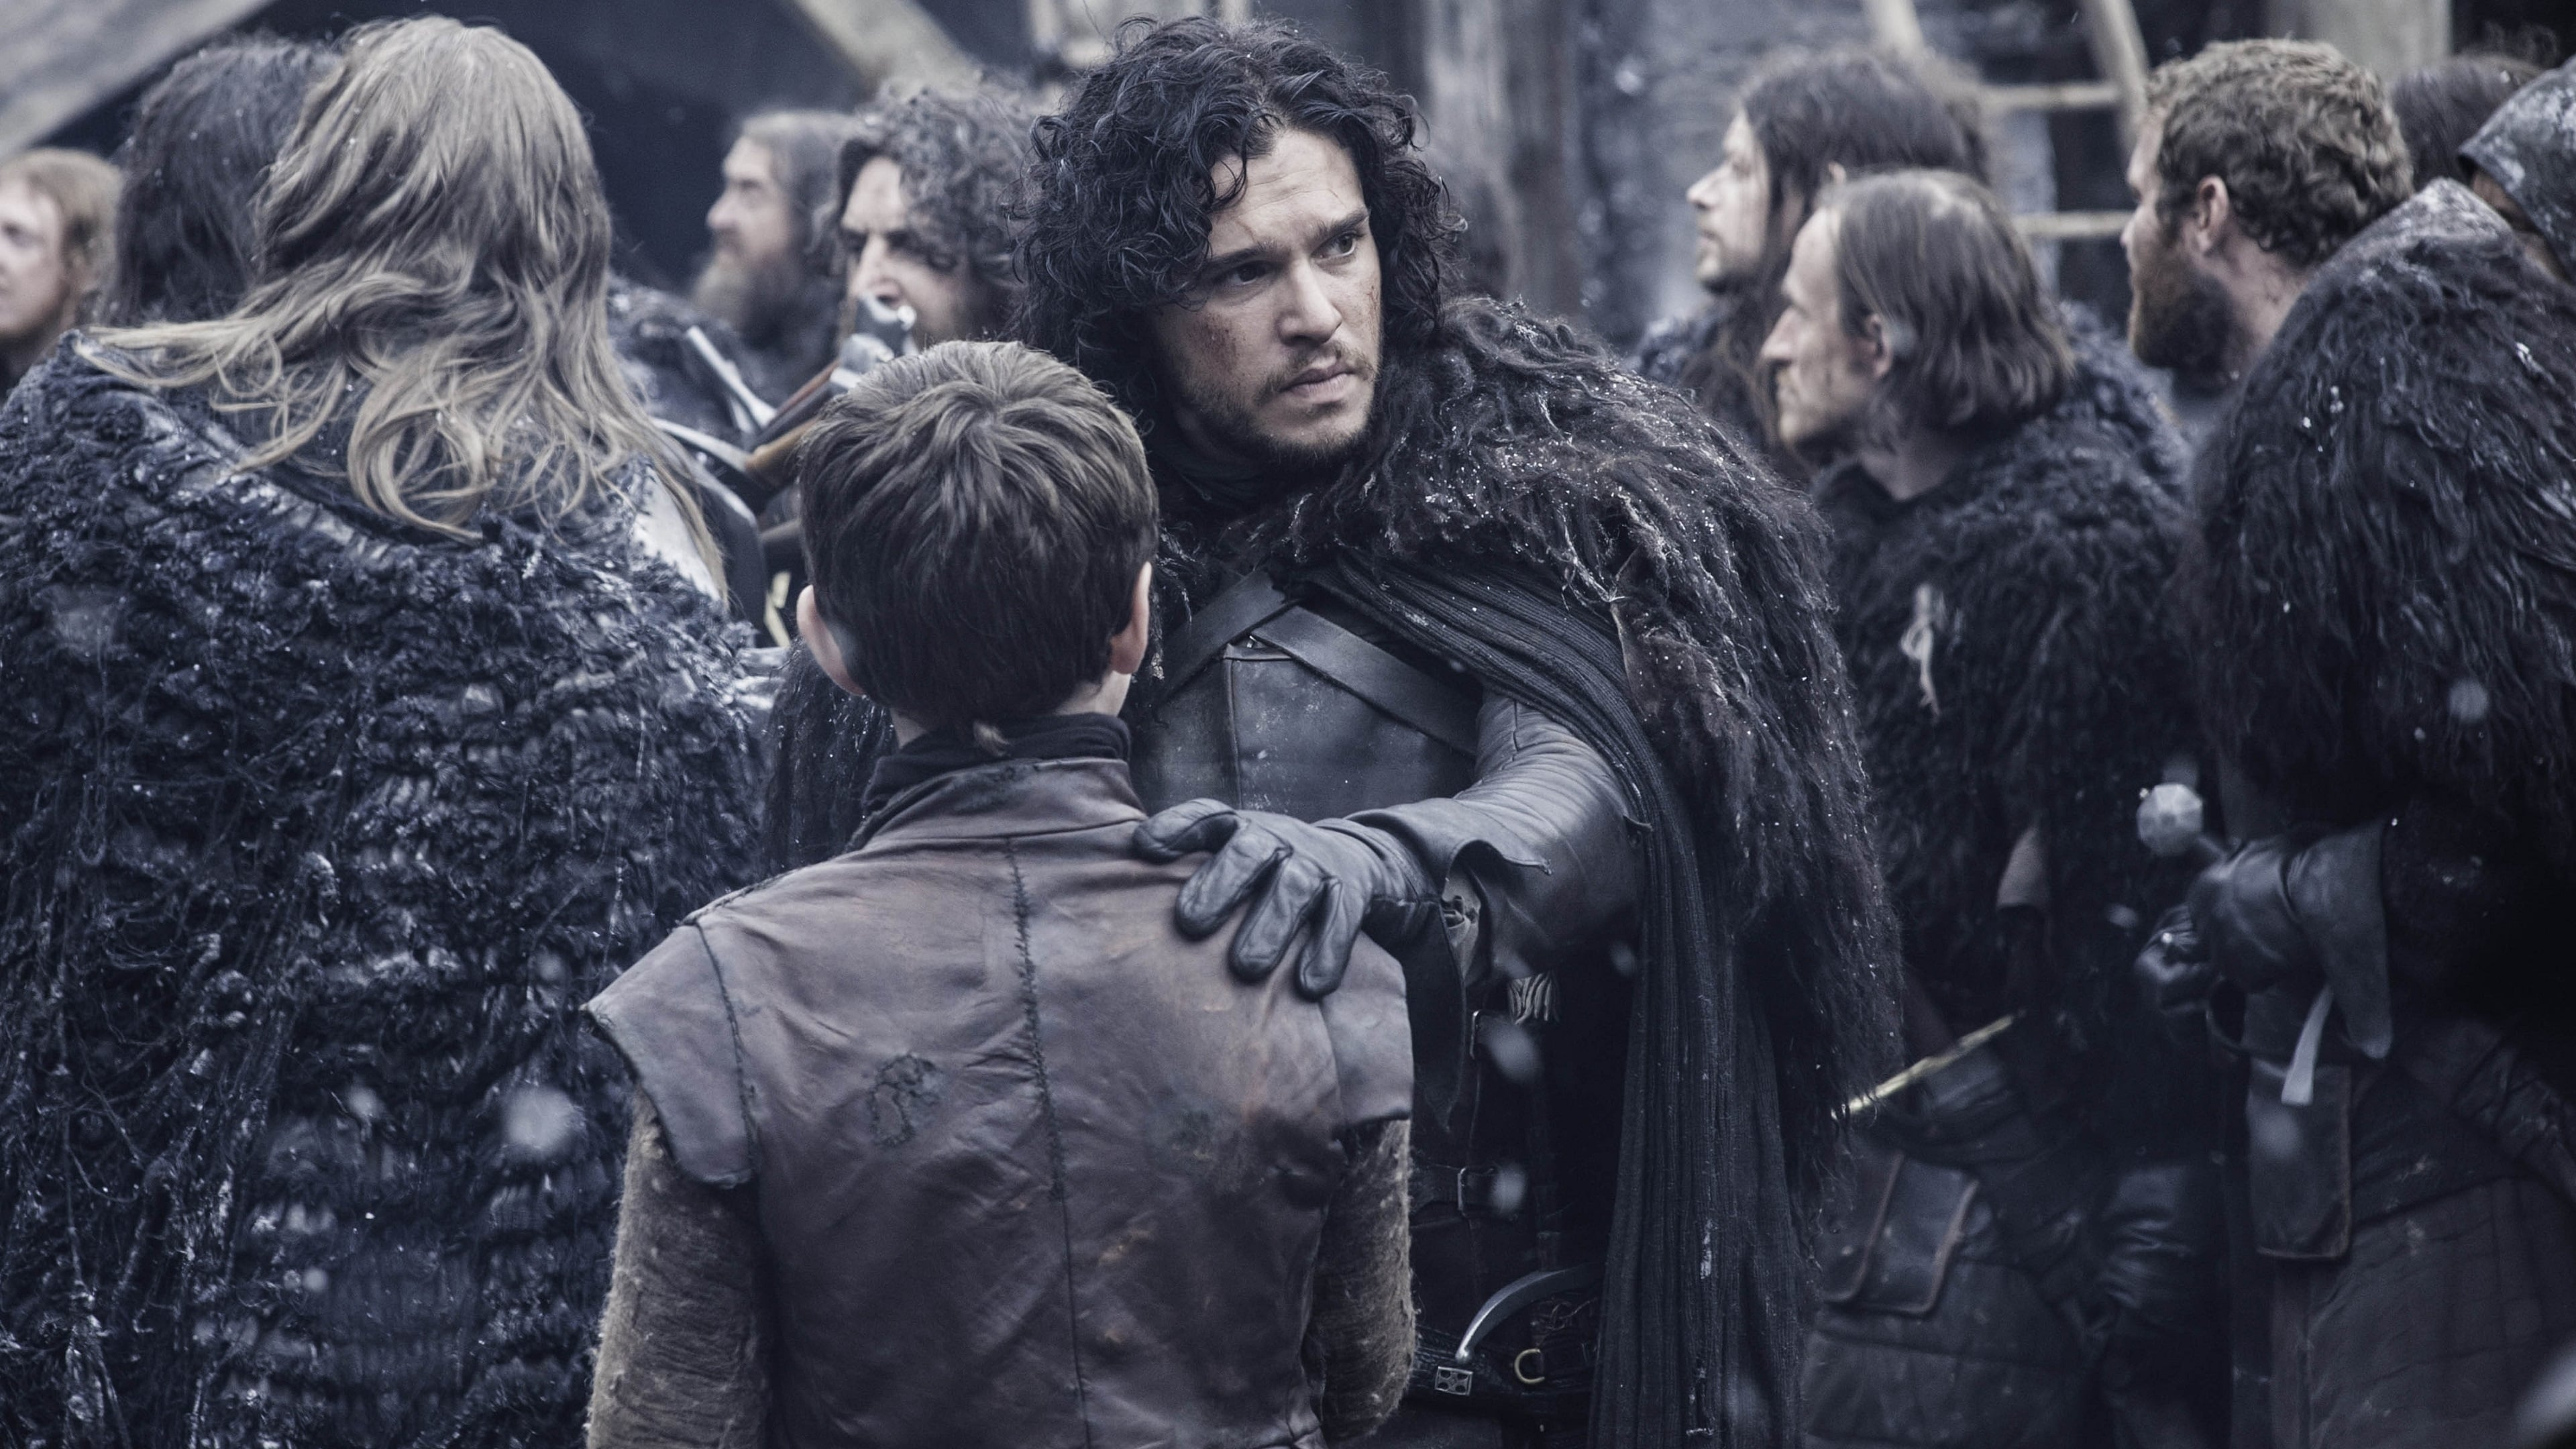 Watch Game of Thrones Season 5 For Free Online 123movies.com